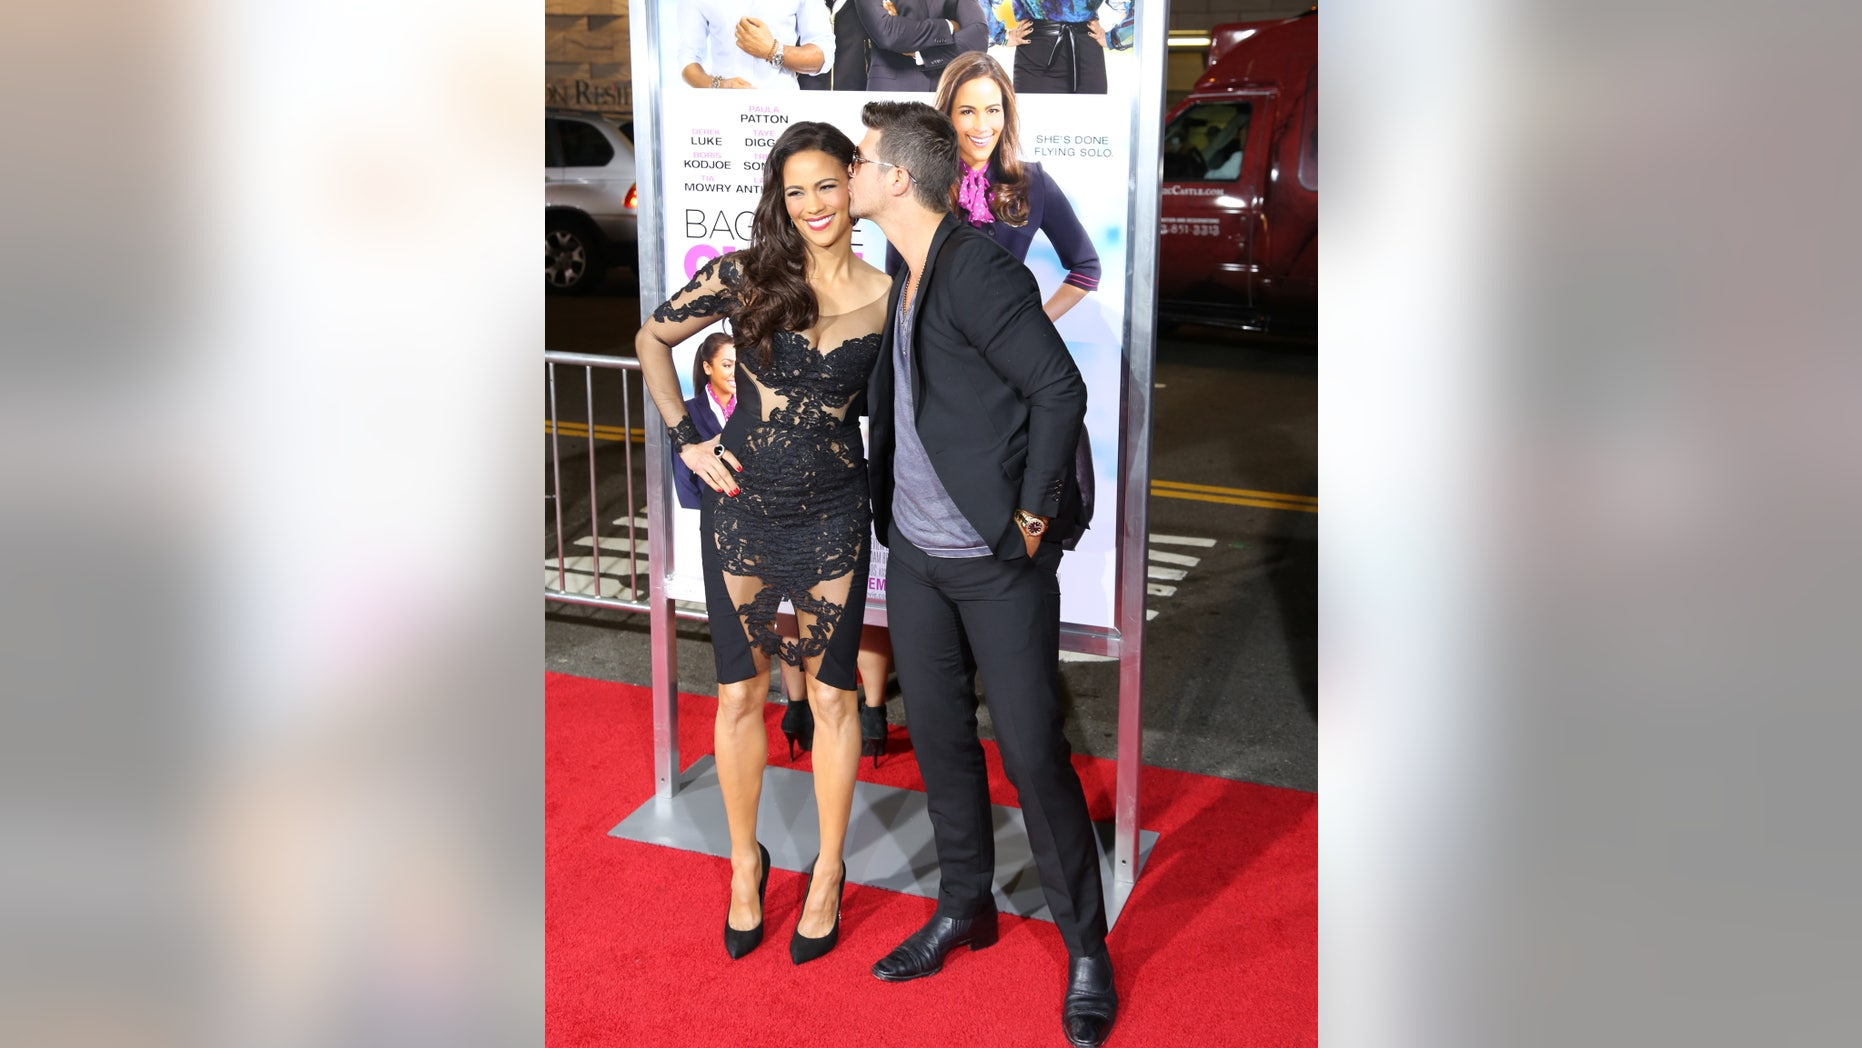 Robin Thicke and Paula Patton attending the 'Baggage Claim' premiere, at Regal Cinemas L.A. Live. September 25, 2013 X17online.com